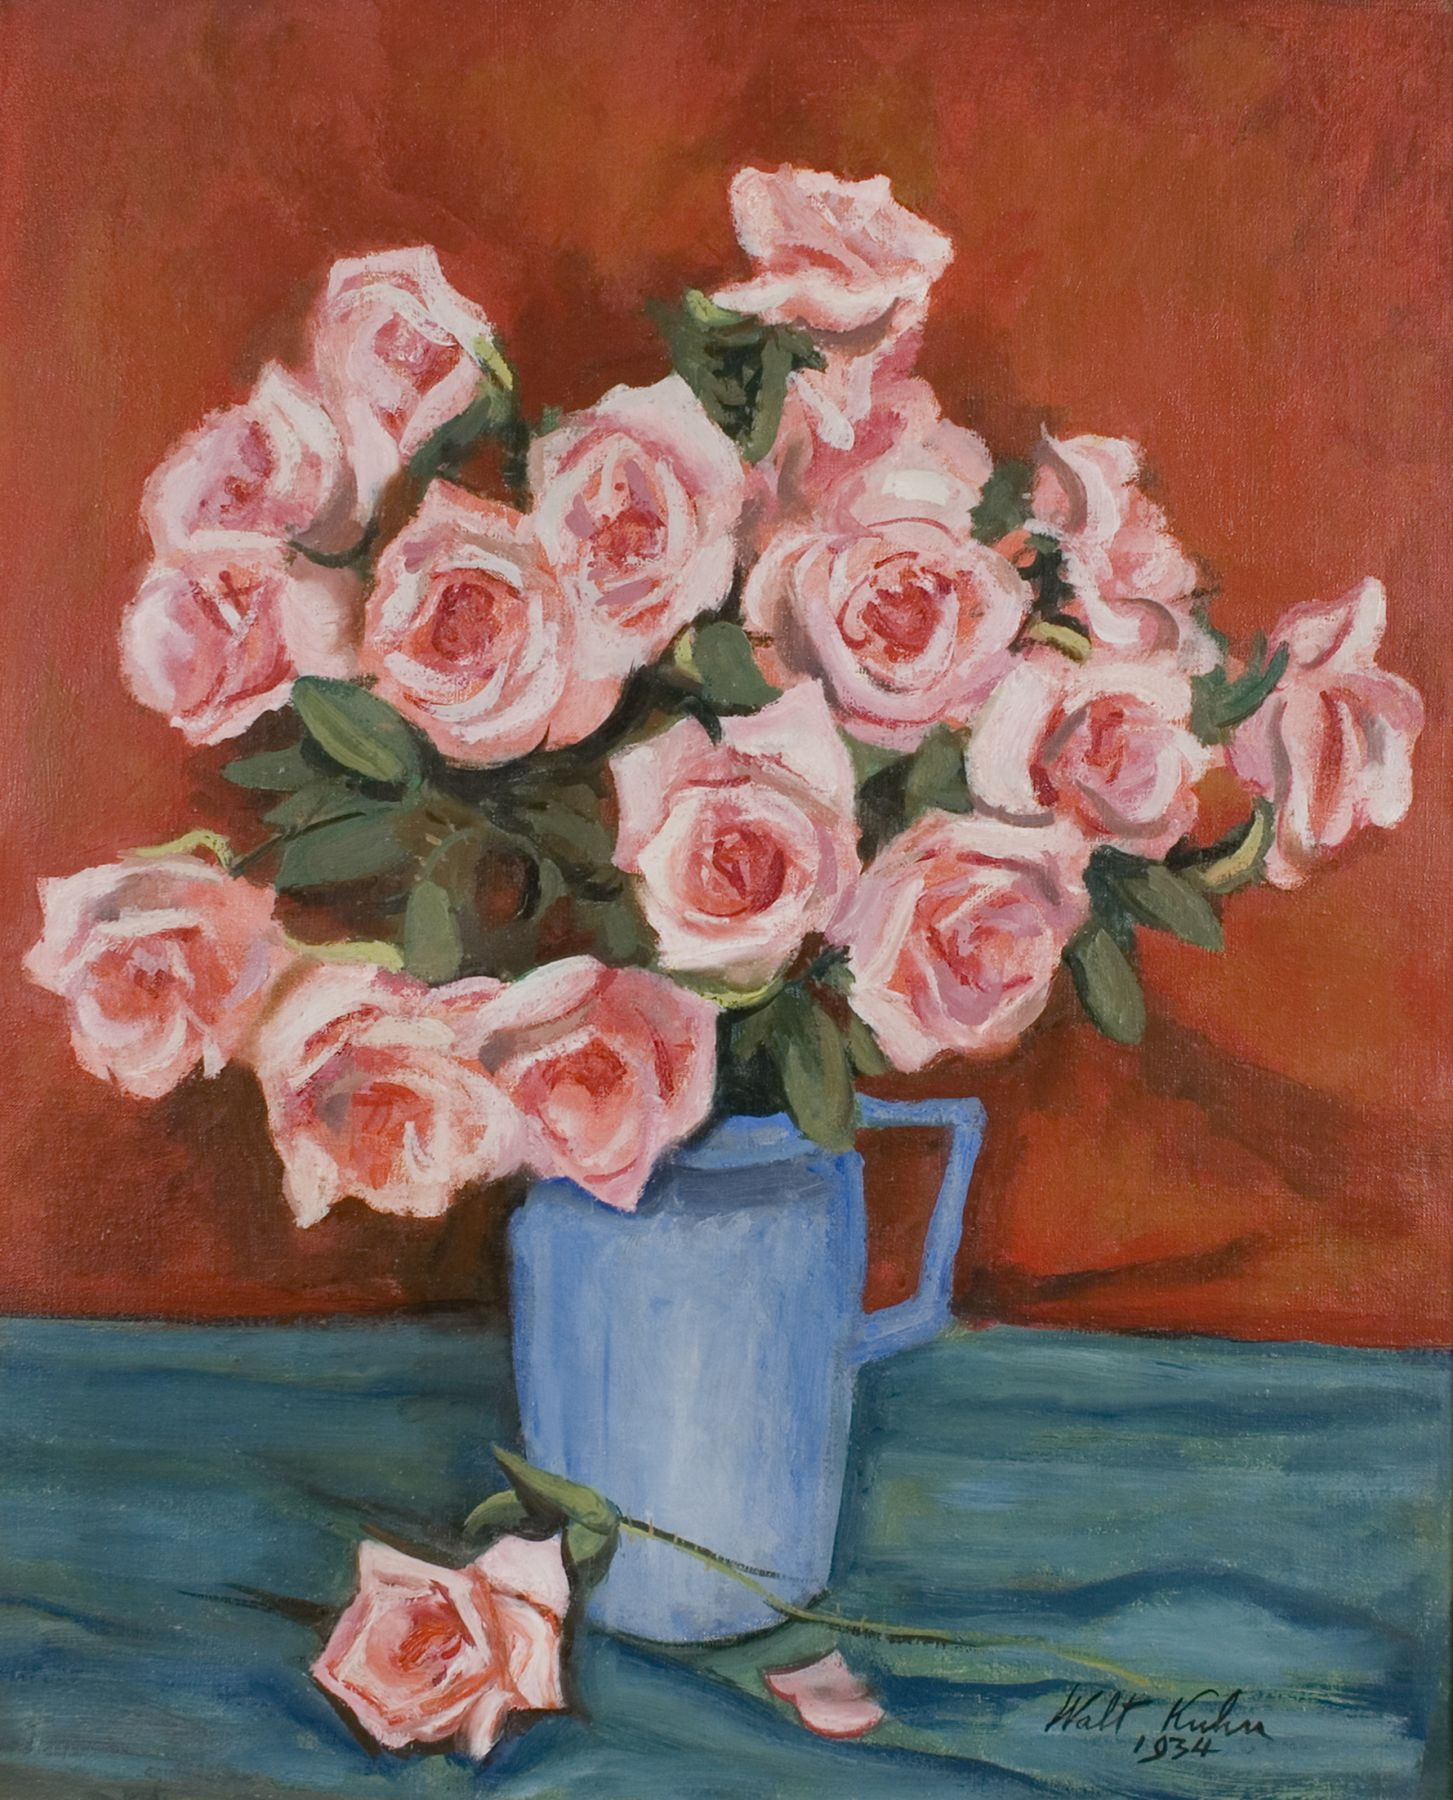 Walt Kuhn, Pink Roses in Blue Pitcher, 1934, oil on canvas, 30 x 25 inches, 38 3/4 x 33 1/4 x 1 5/8 inches